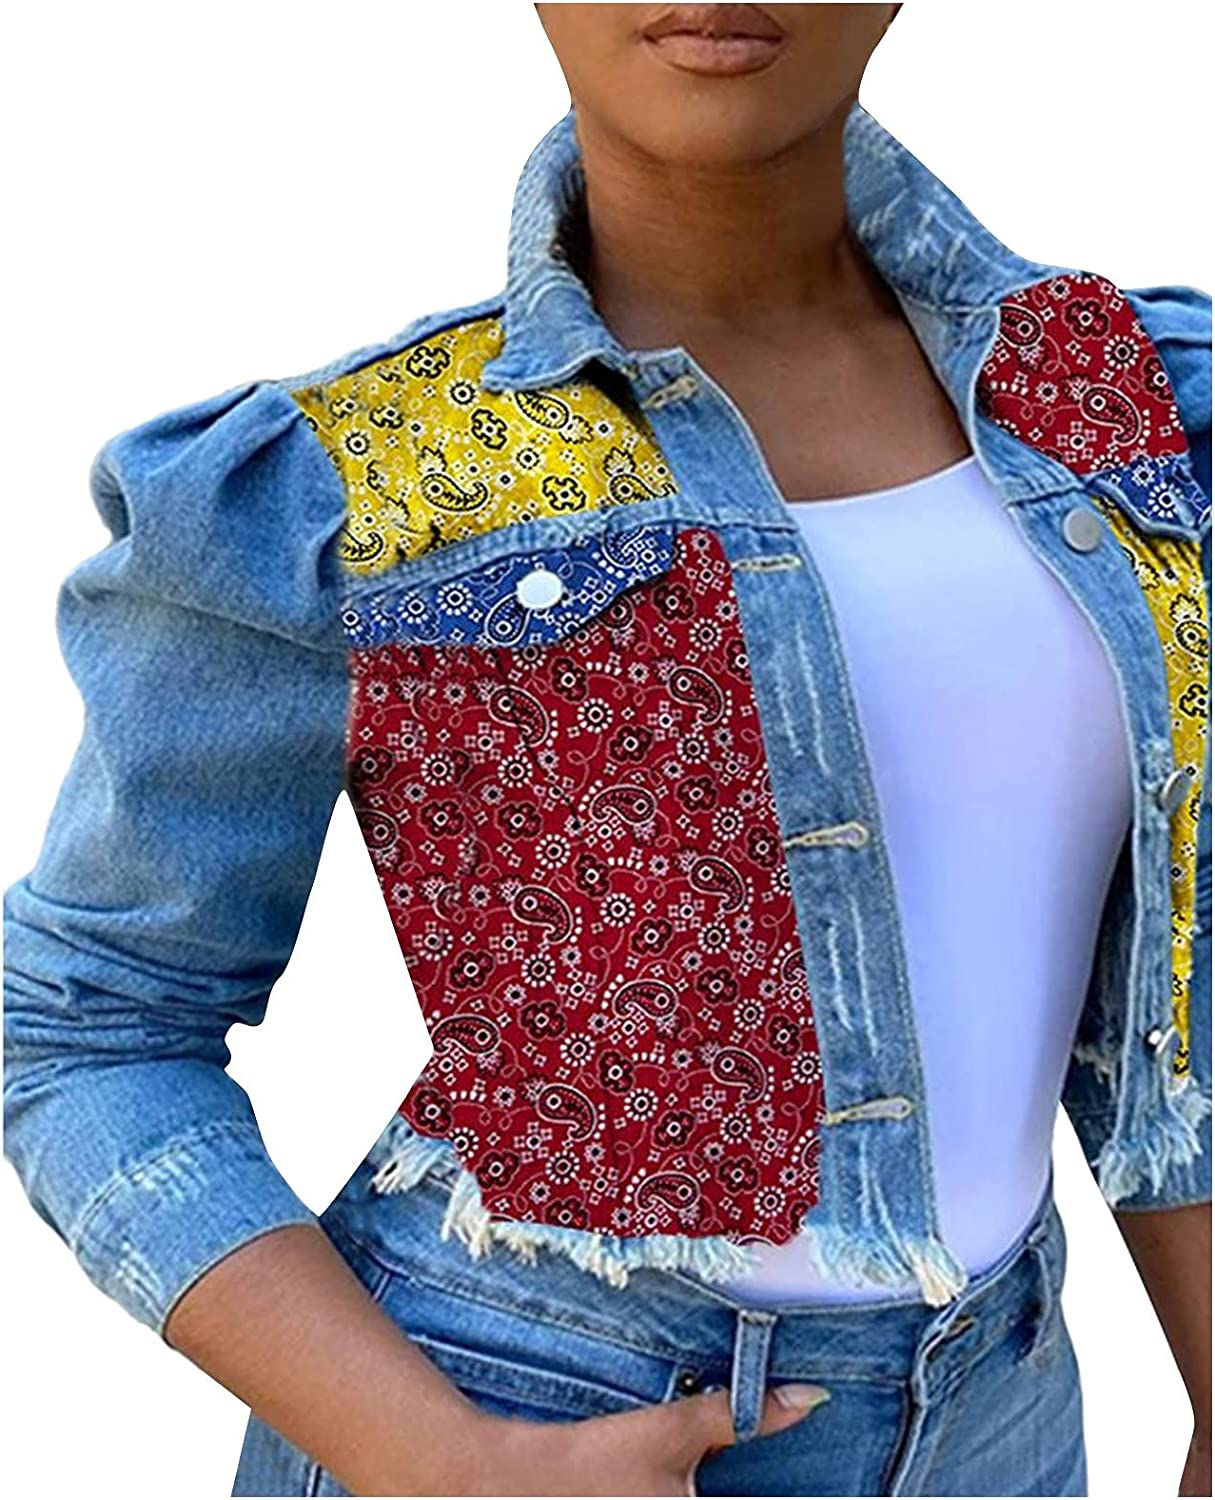 poundy shirt Women's Ripped Puff Sleeve Denim Jacket Pockets Front Button Down Turn-Collar Crop Printed Jean Coat